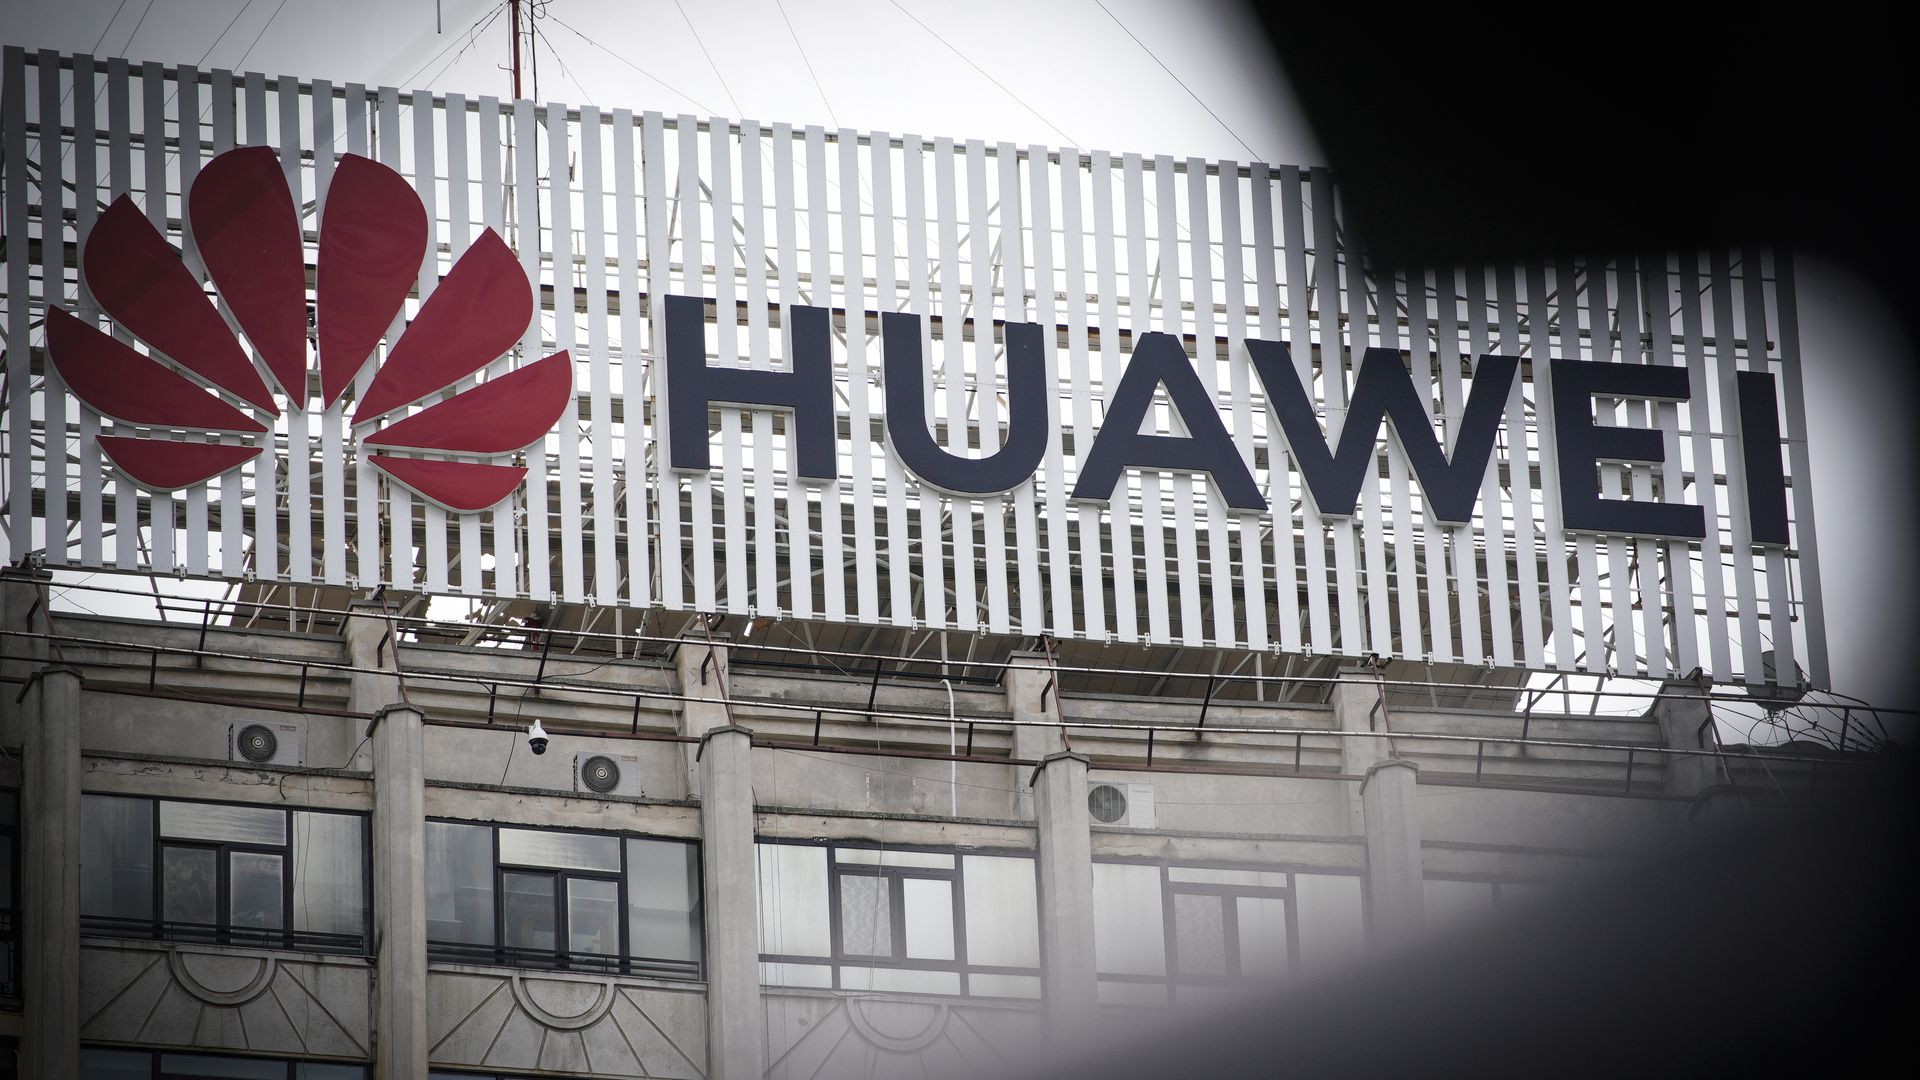 Rural U.S. networks may have to spend millions to replace Huawei equipment banned by Trump